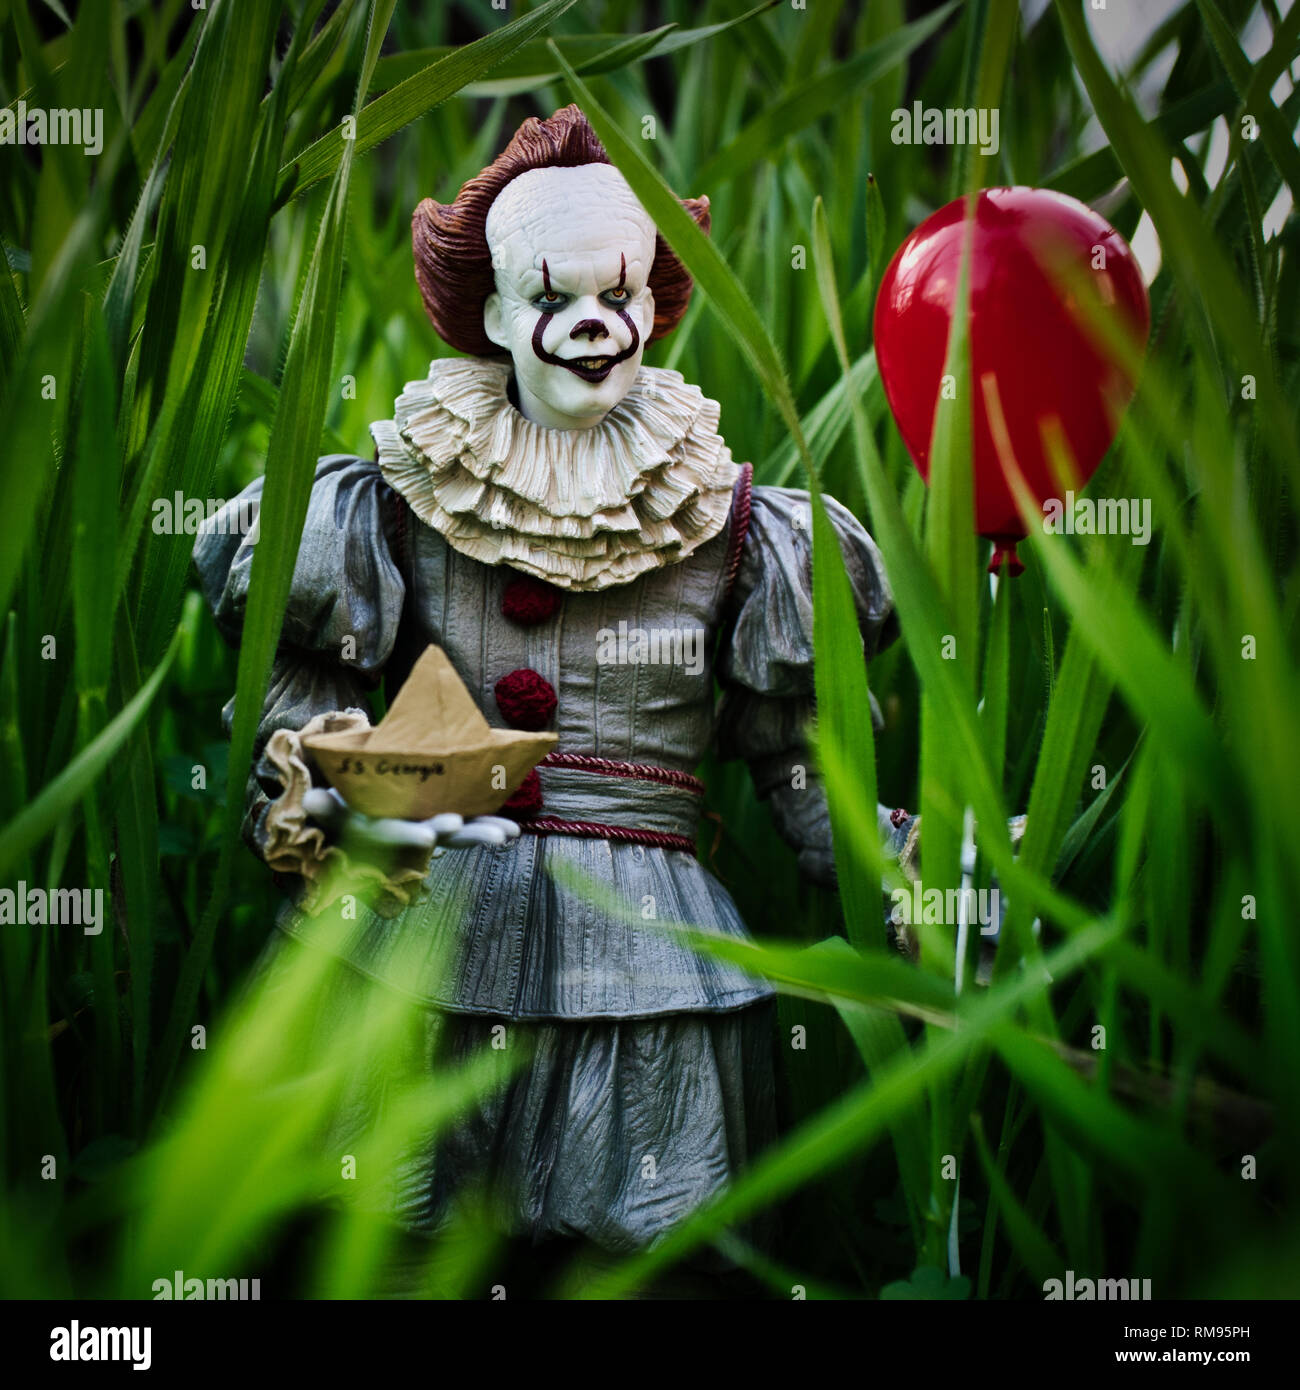 Pennywise The dancing Clown, we all float down here. - Stock Image